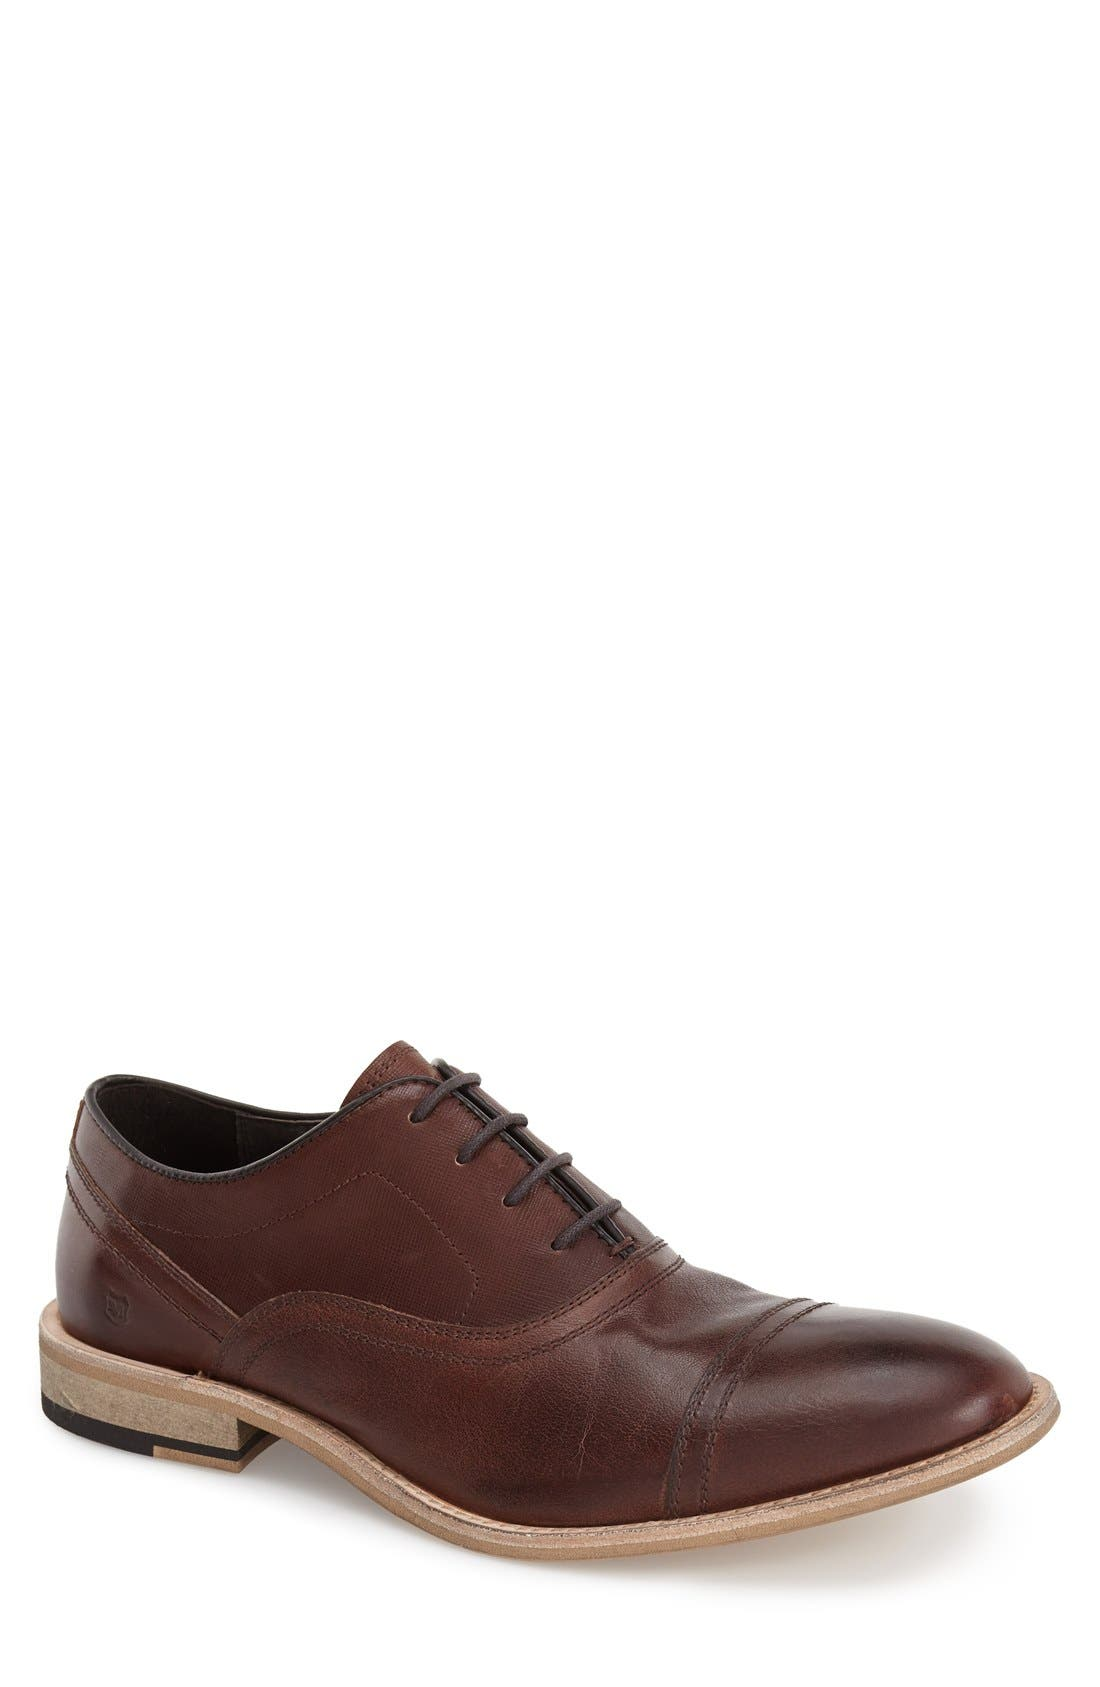 'Henry' Cap Toe Oxford,                         Main,                         color,